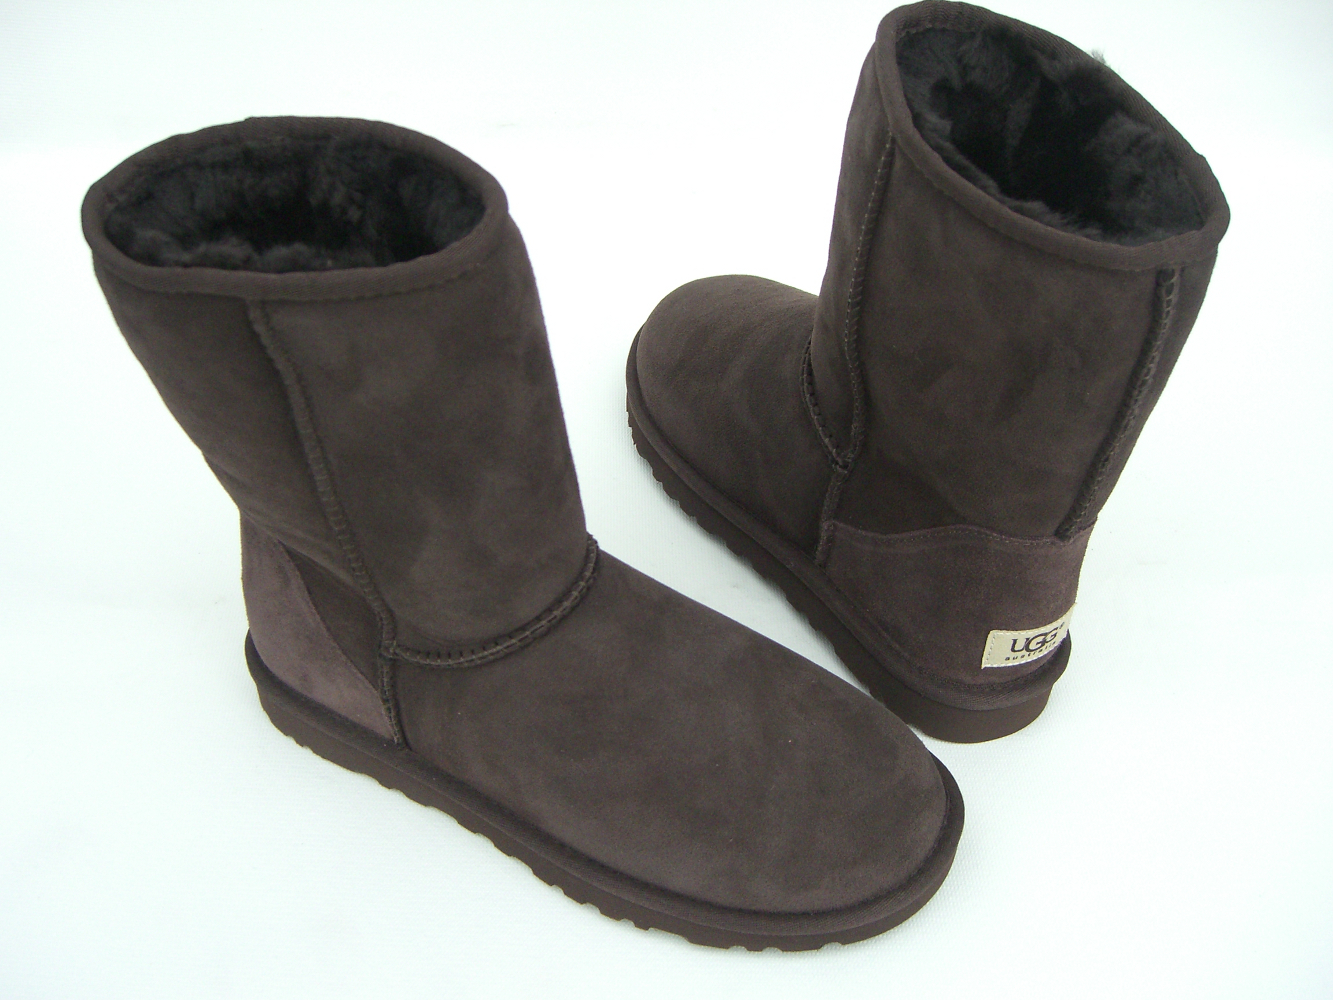 ugg boots from china